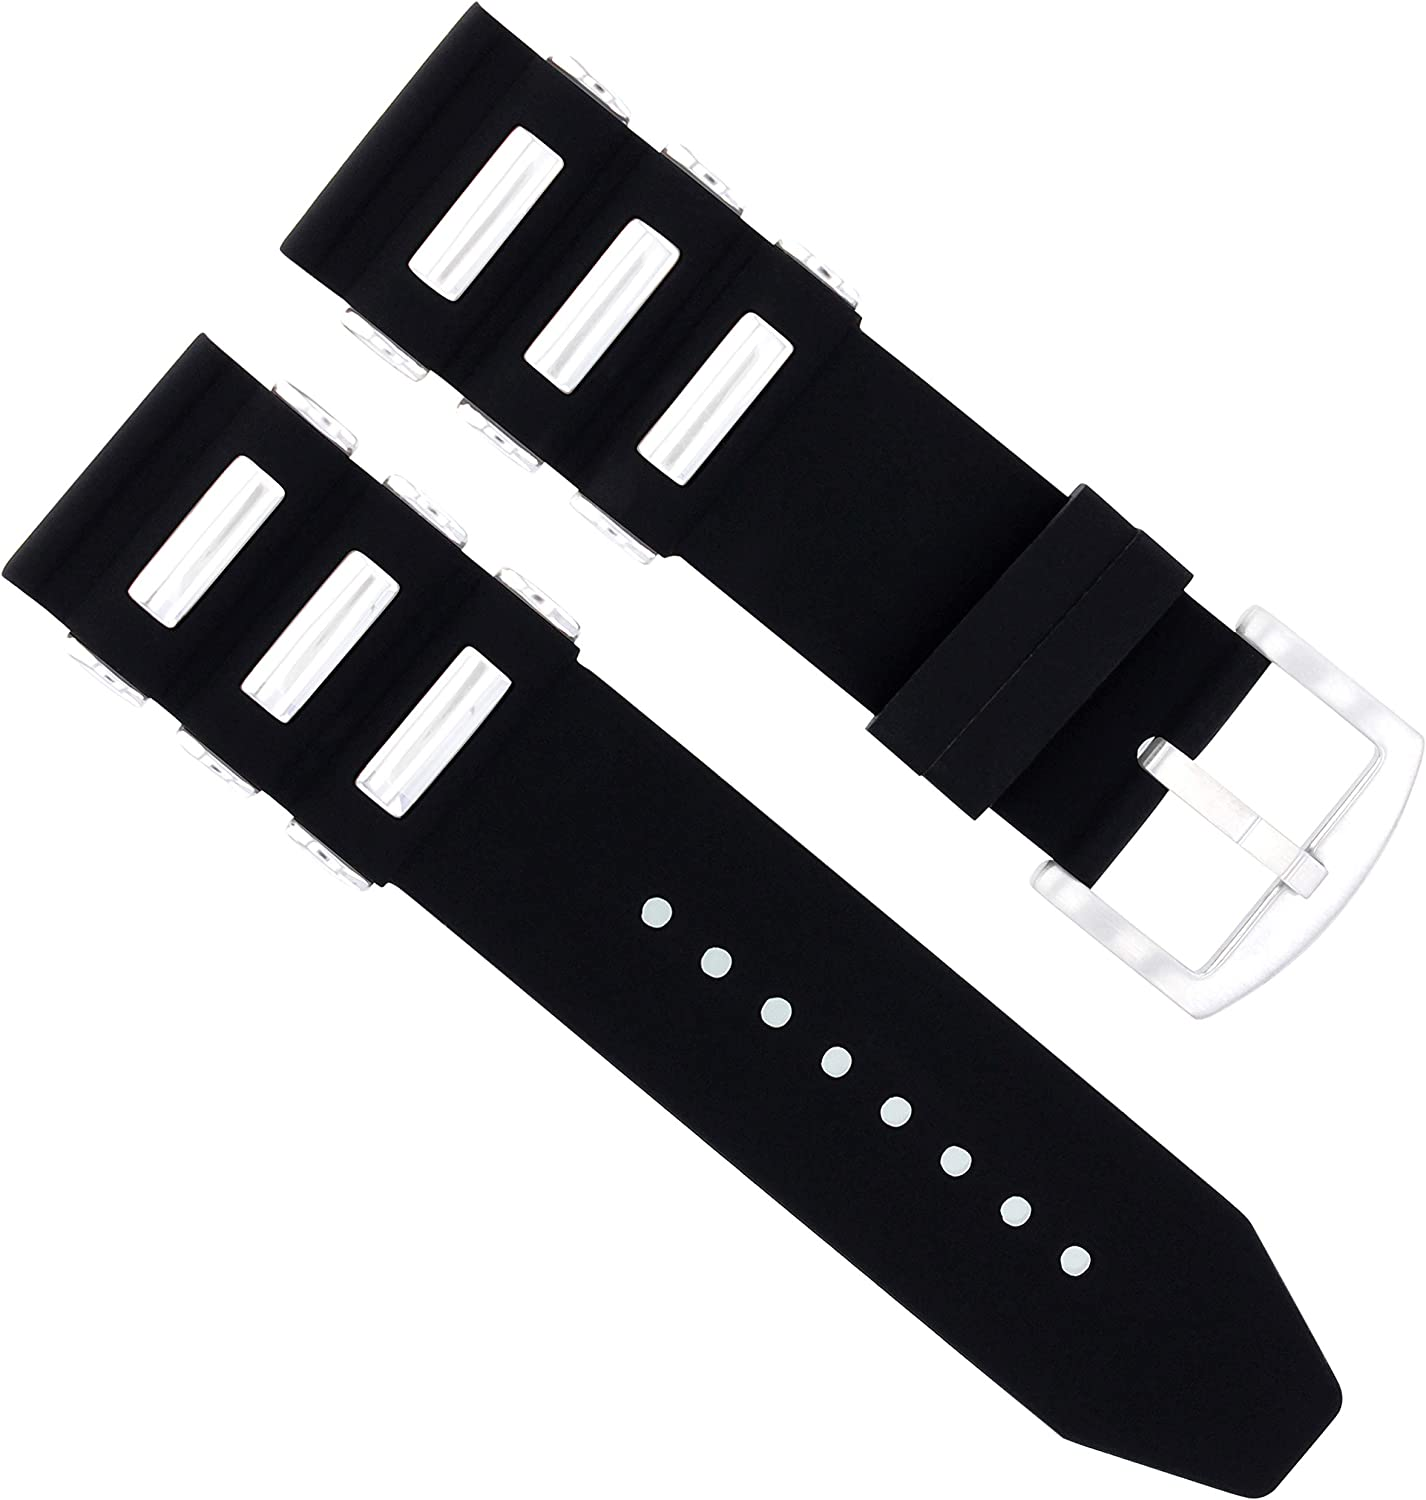 22mm Rubber Diver Strap Band Direct sale of manufacturer Timewalke Recommendation Compatible with Montblanc